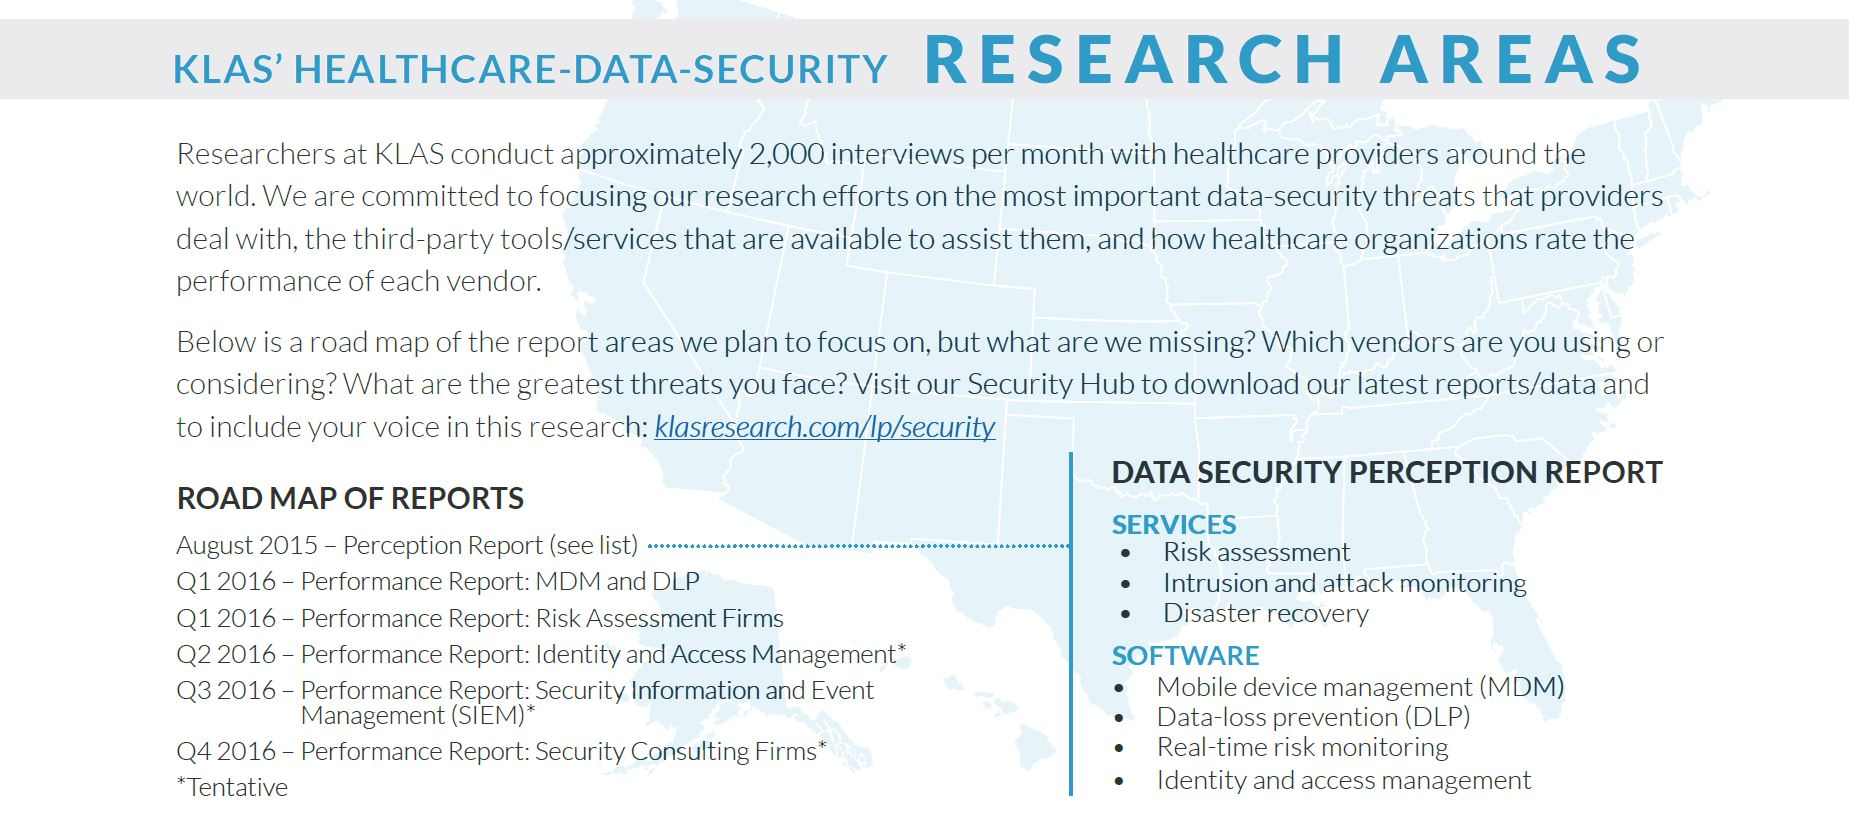 klas healthcare data security research areas